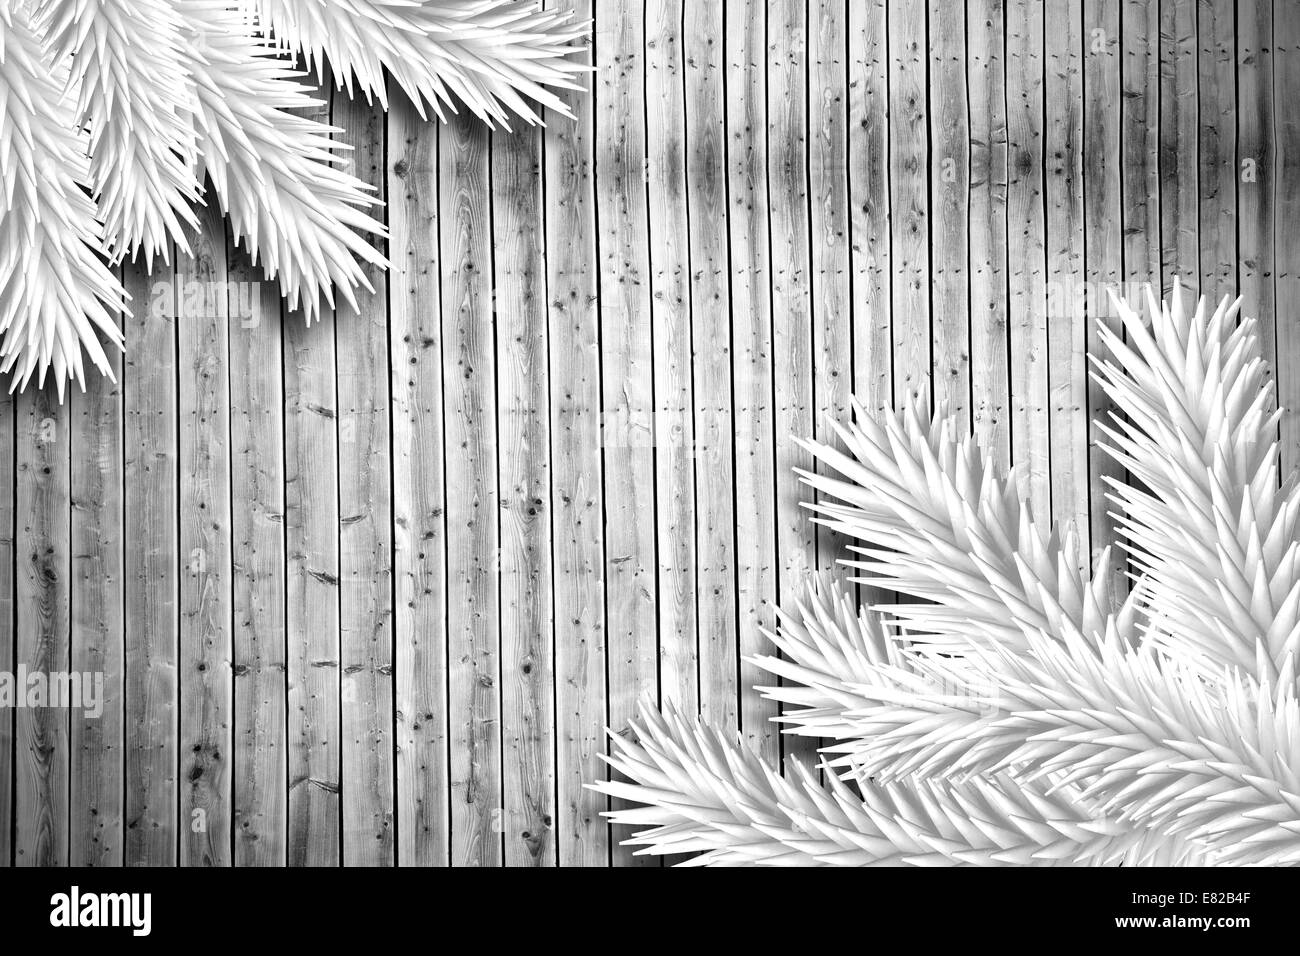 Fir branches on wooden planks - Stock Image